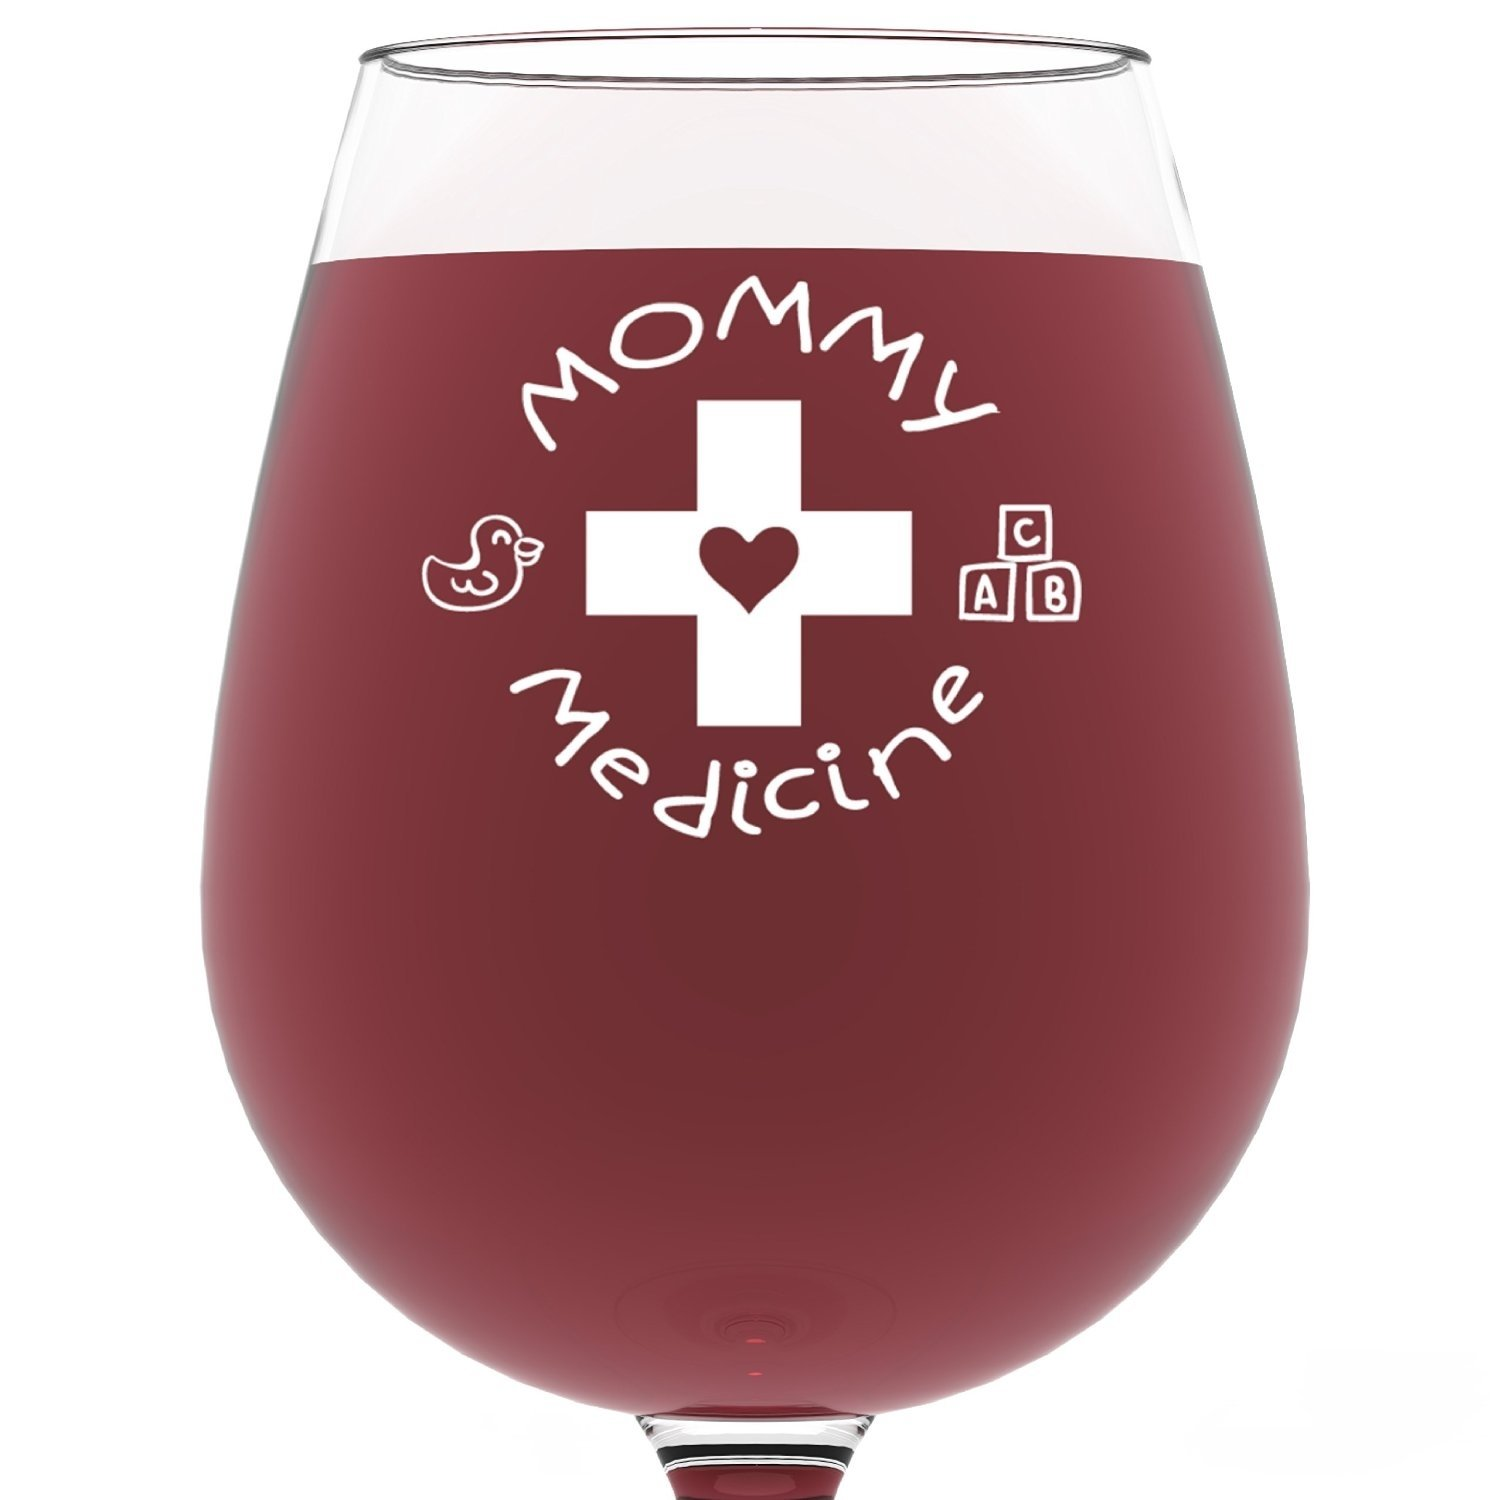 10 Most Popular Mother Day Gift Ideas For Wife amazon mommy medicine funny wine glass 13 oz best mothers